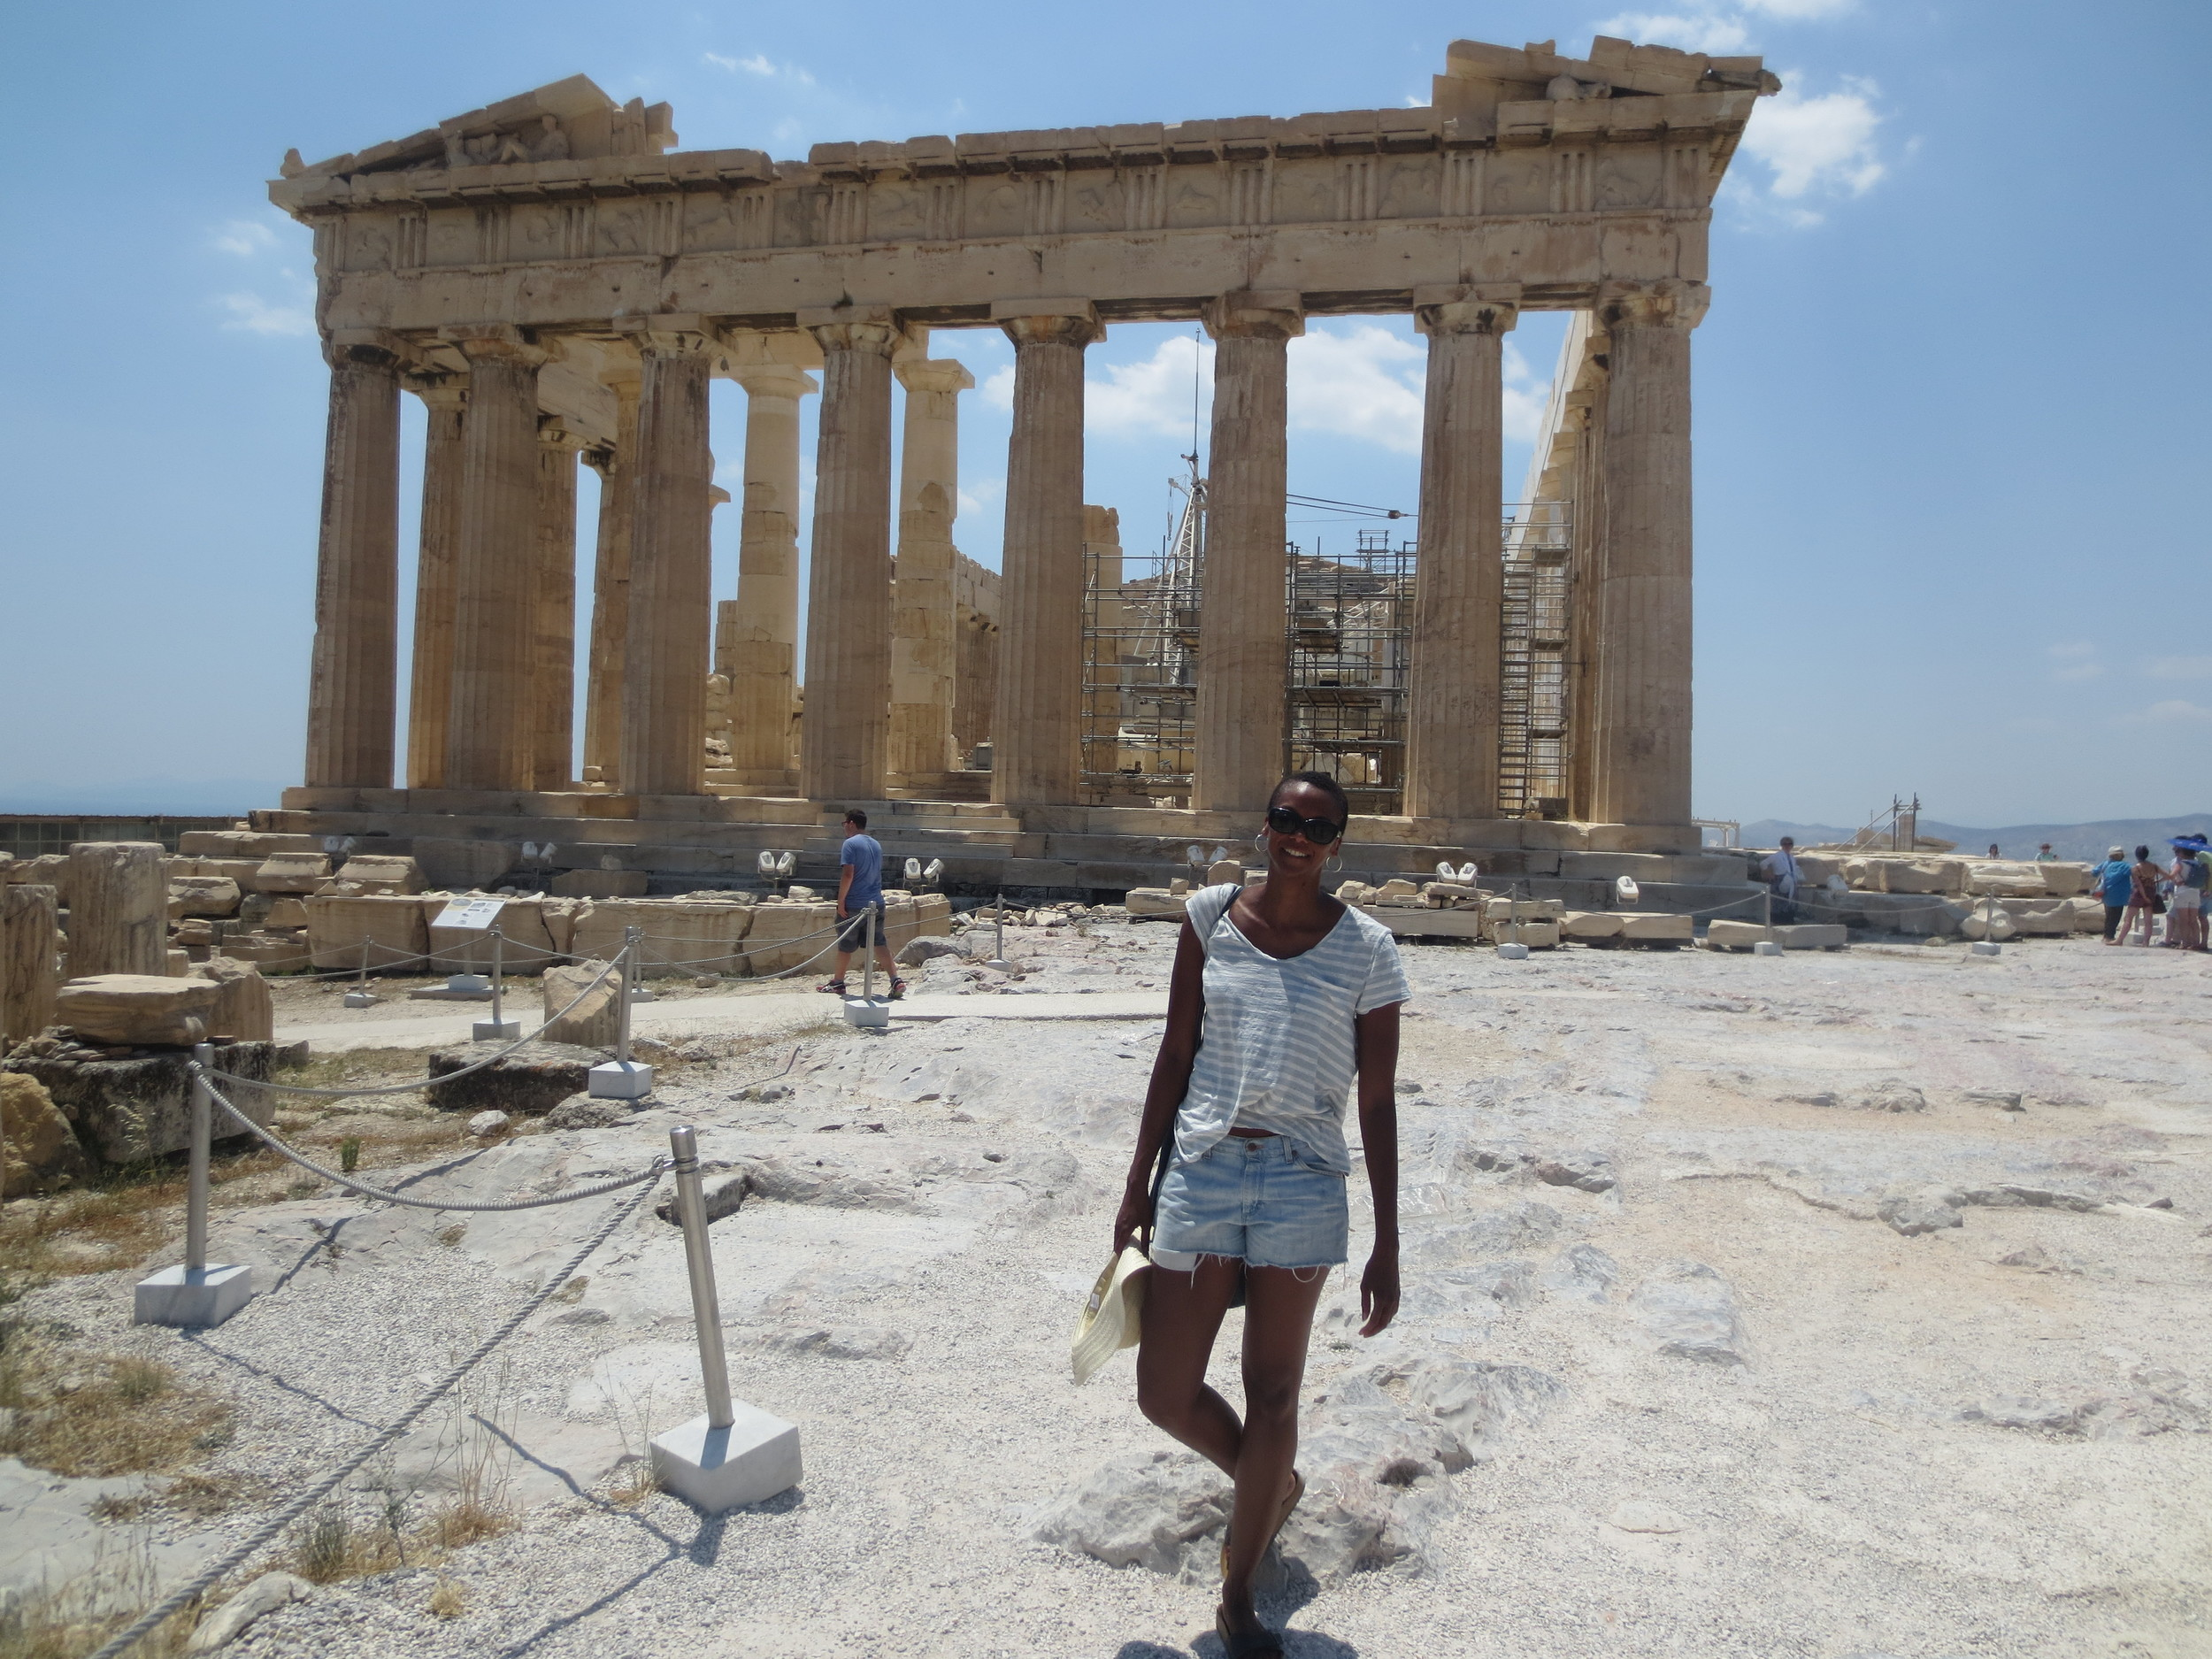 Can't go to Greece without seeing the Acropolis in Athens.